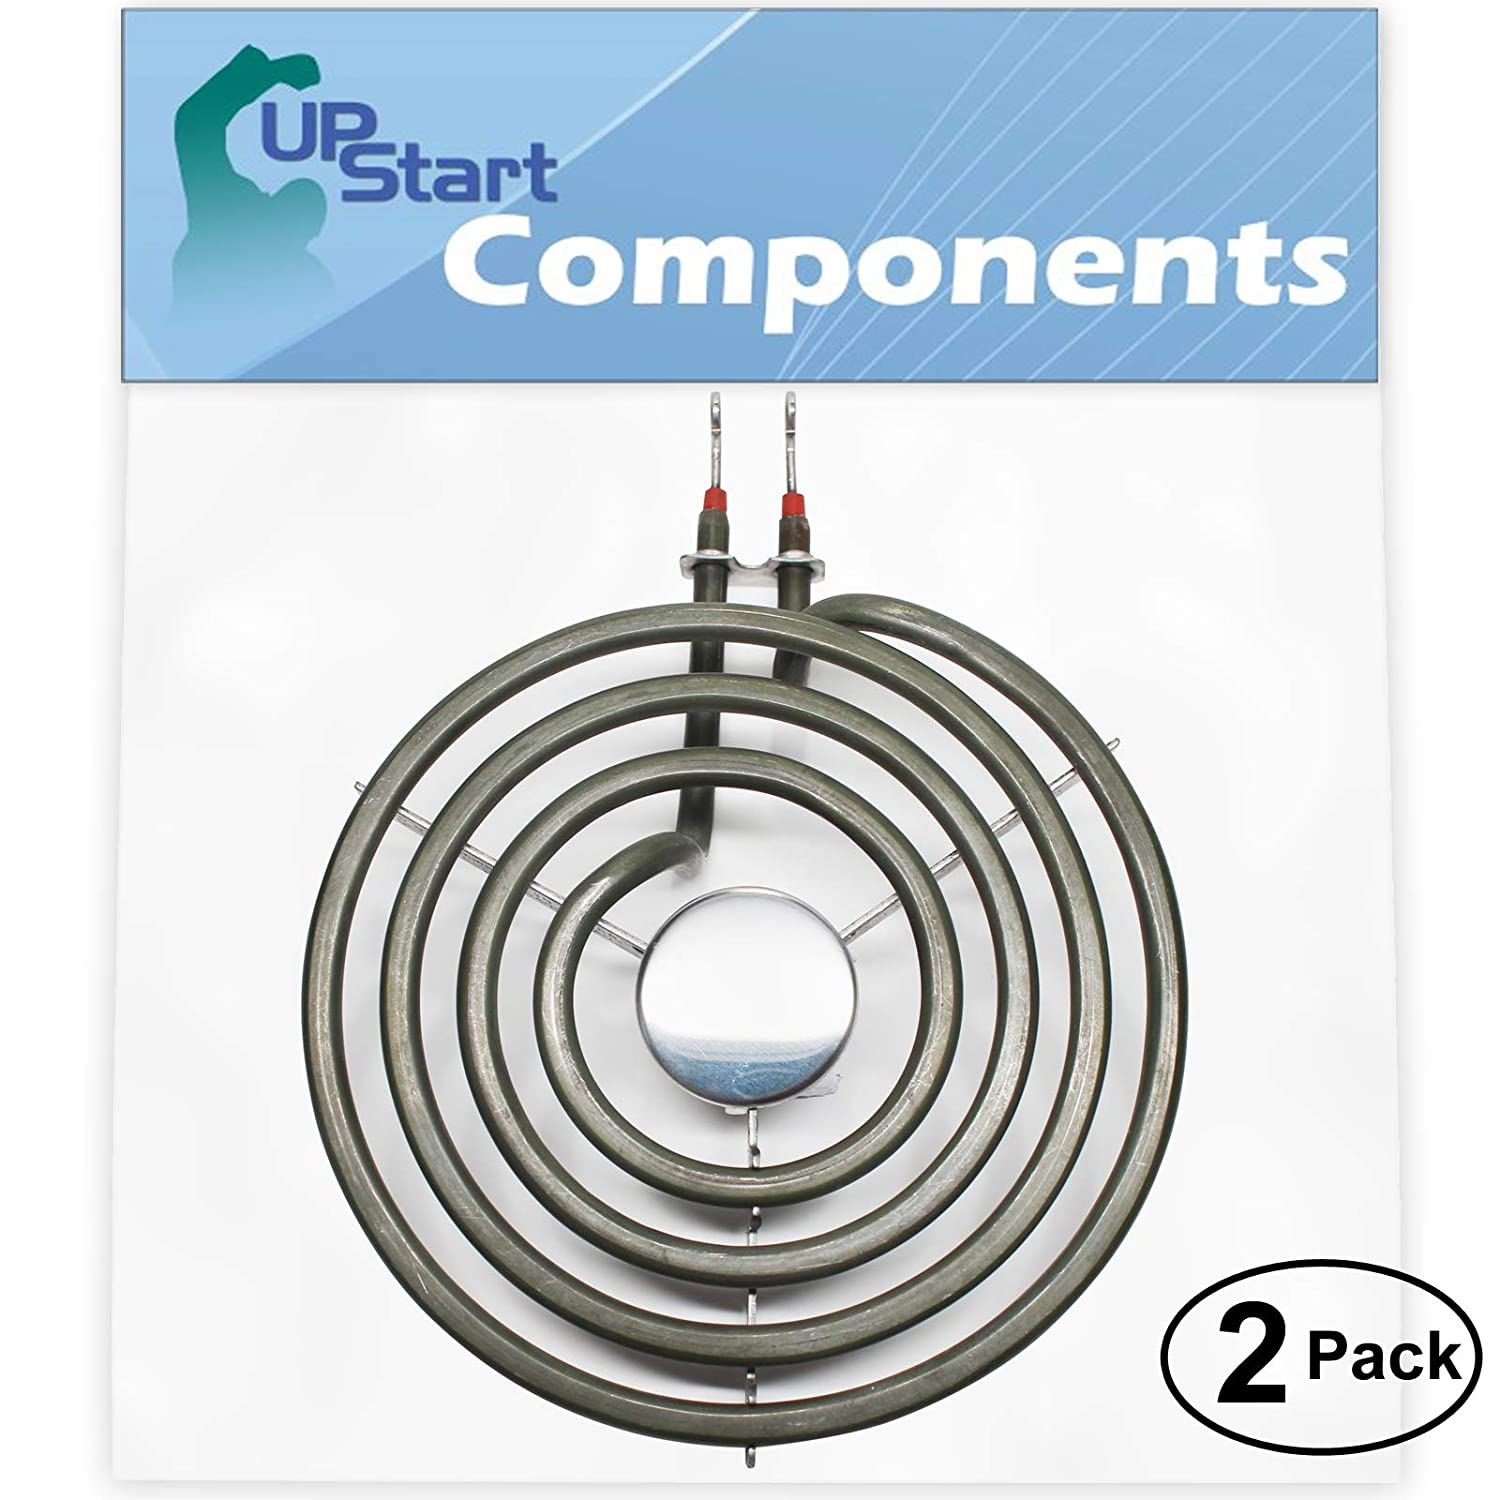 2-Pack Replacement Magic Chef 38FN-2CX-ON 6 inch 4 Turns Surface Burner Element - Compatible Magic Chef 660532 Heating Element for Range, Stove & Cooktop gzvyef1043727